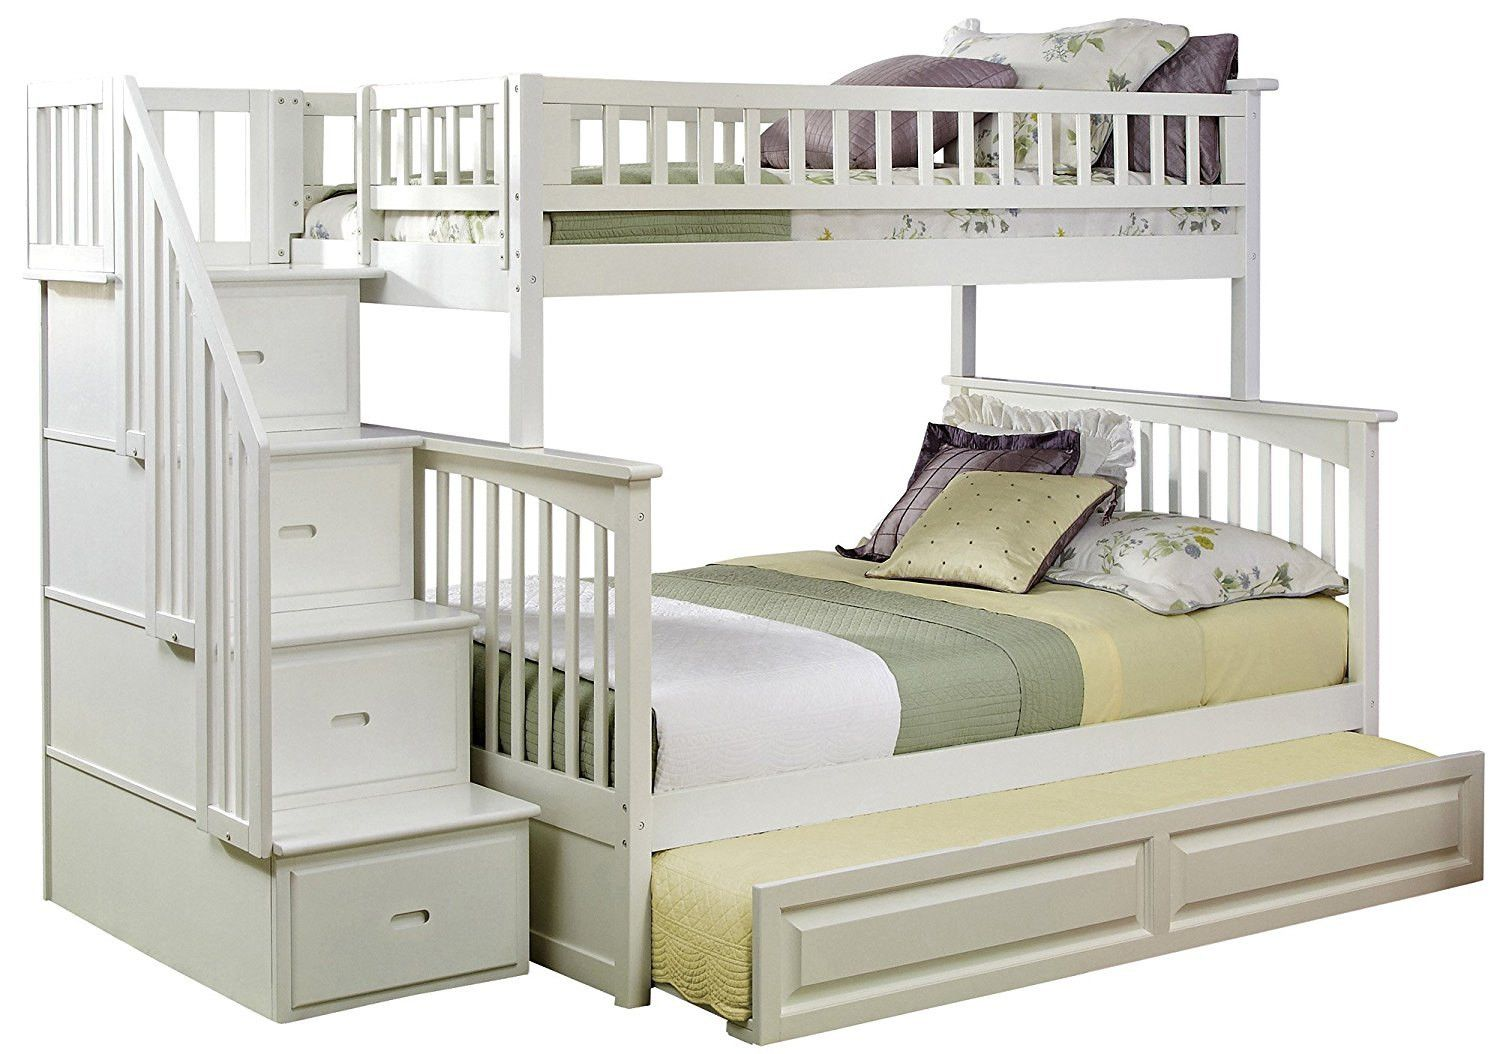 18 Twin Over Full Bunk Bed Ikea Bedroom Ideas With Images